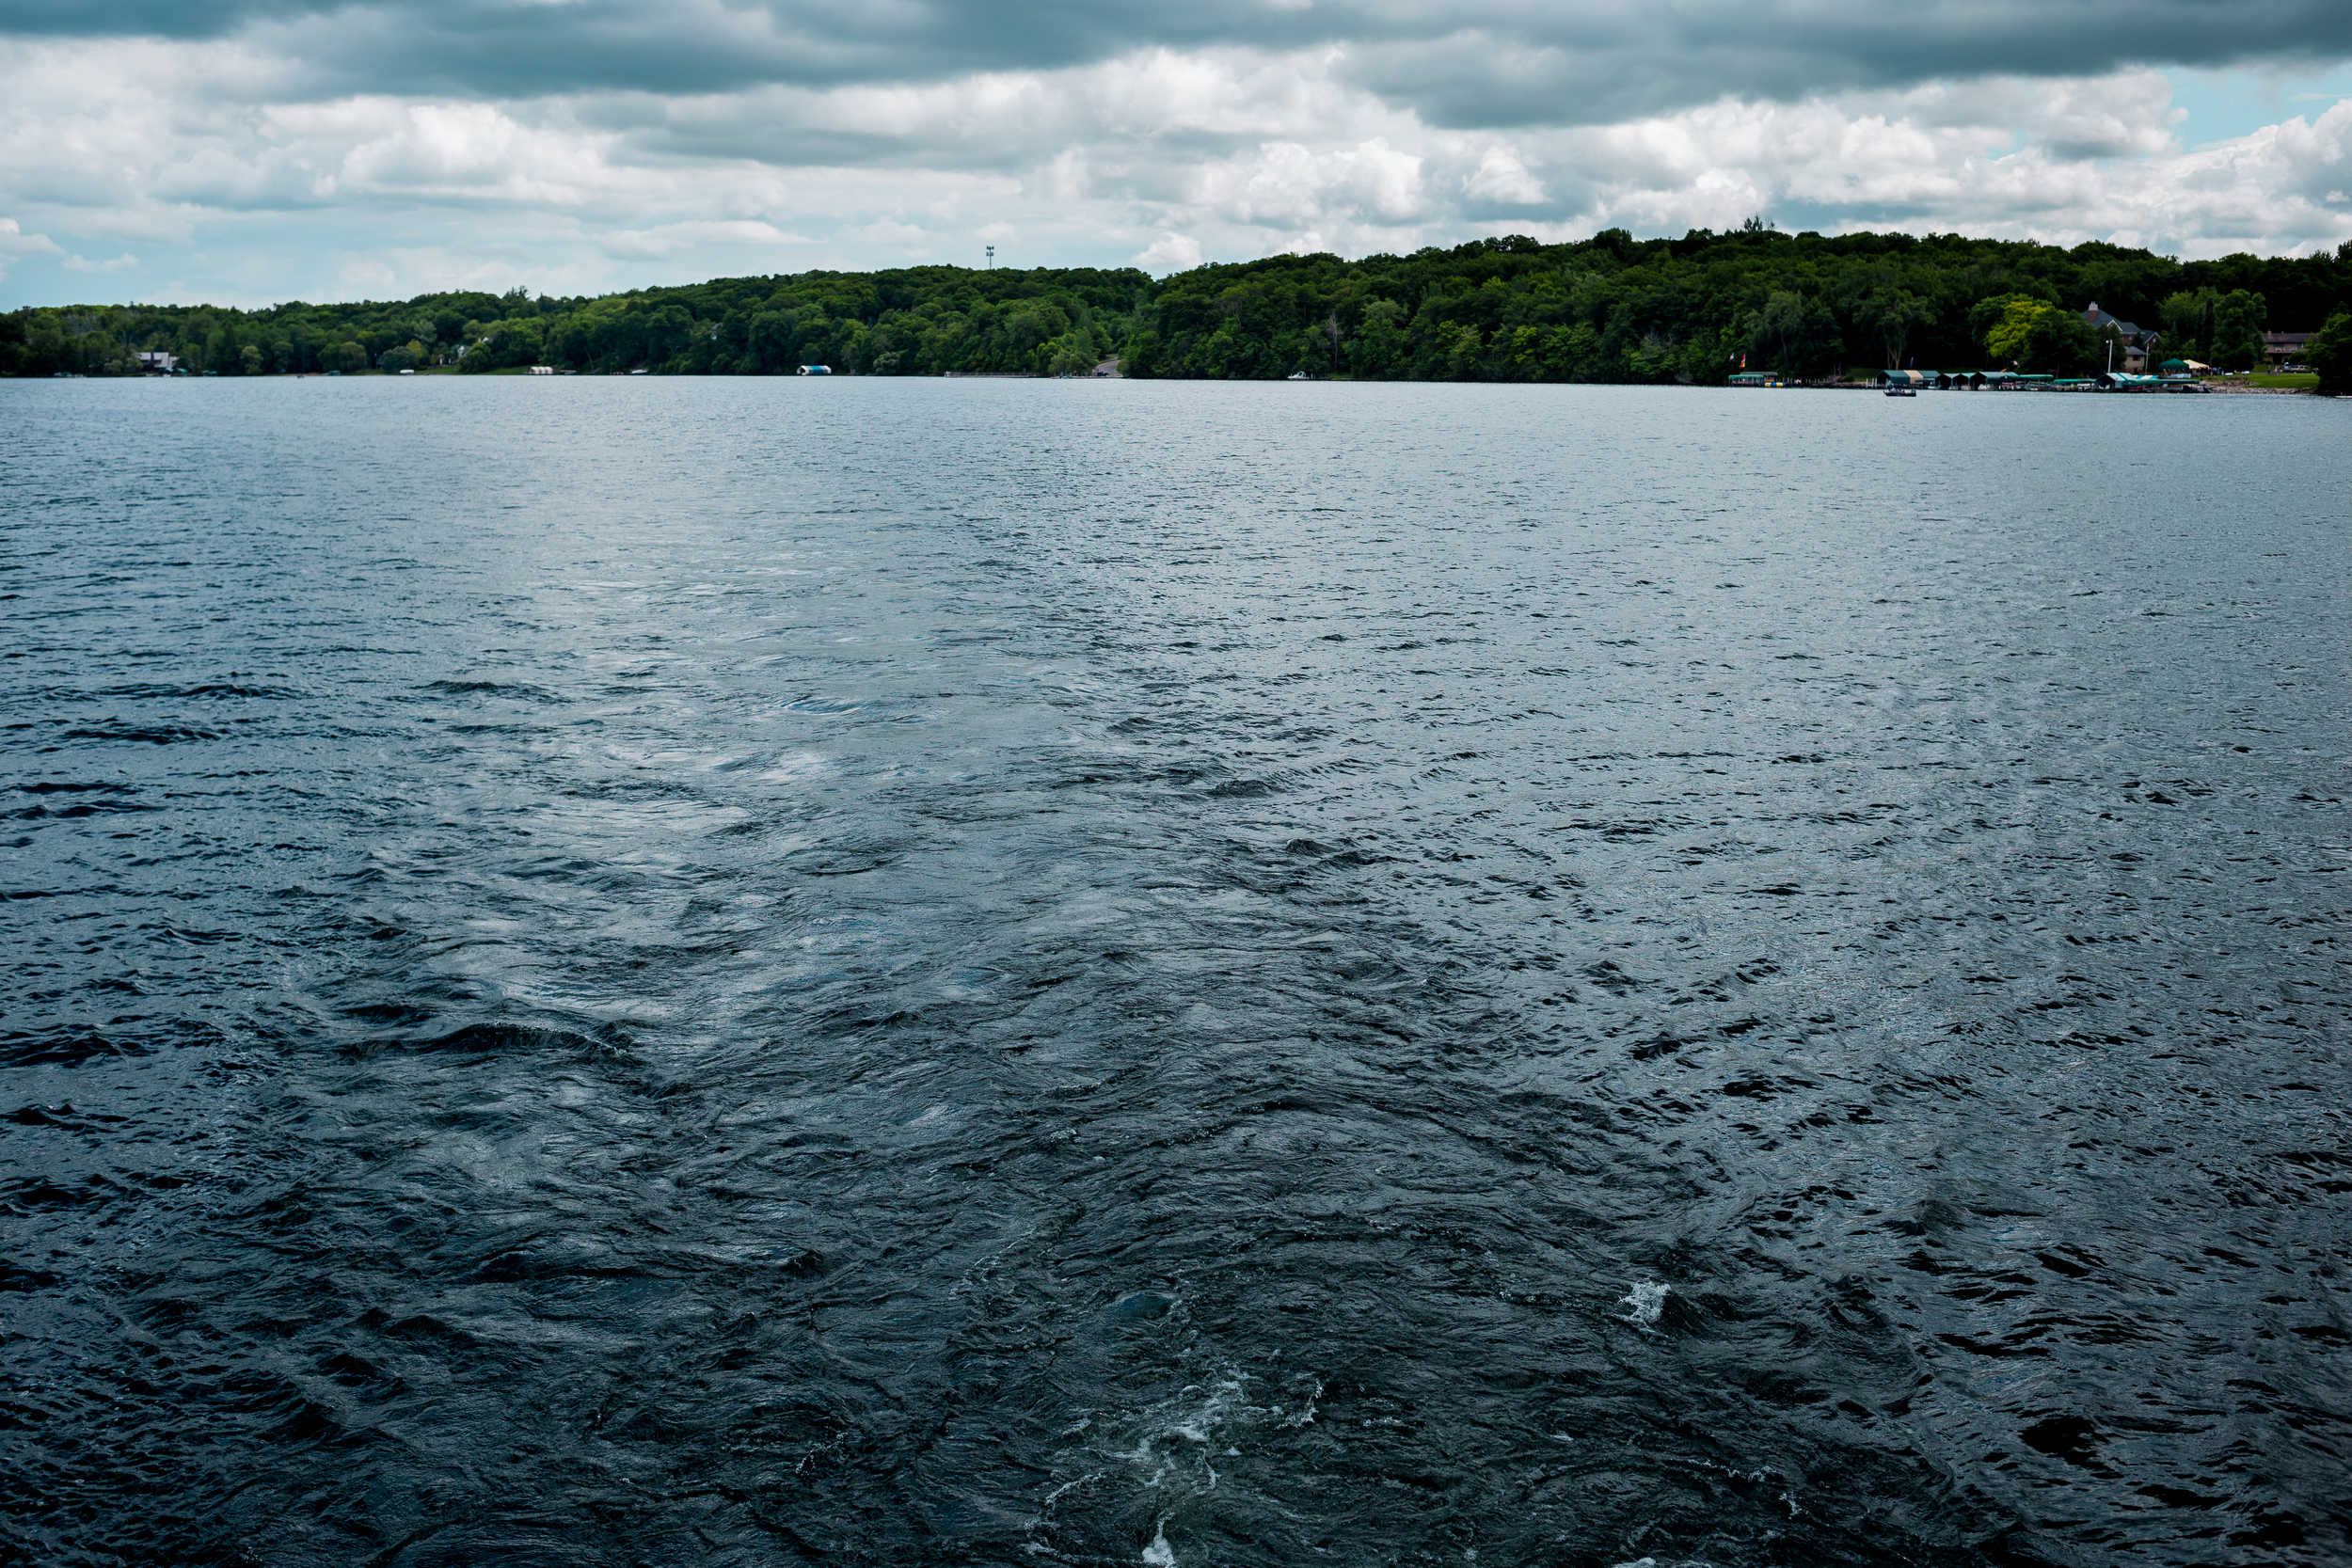 Minnesota has some of the most beautiful lakes.